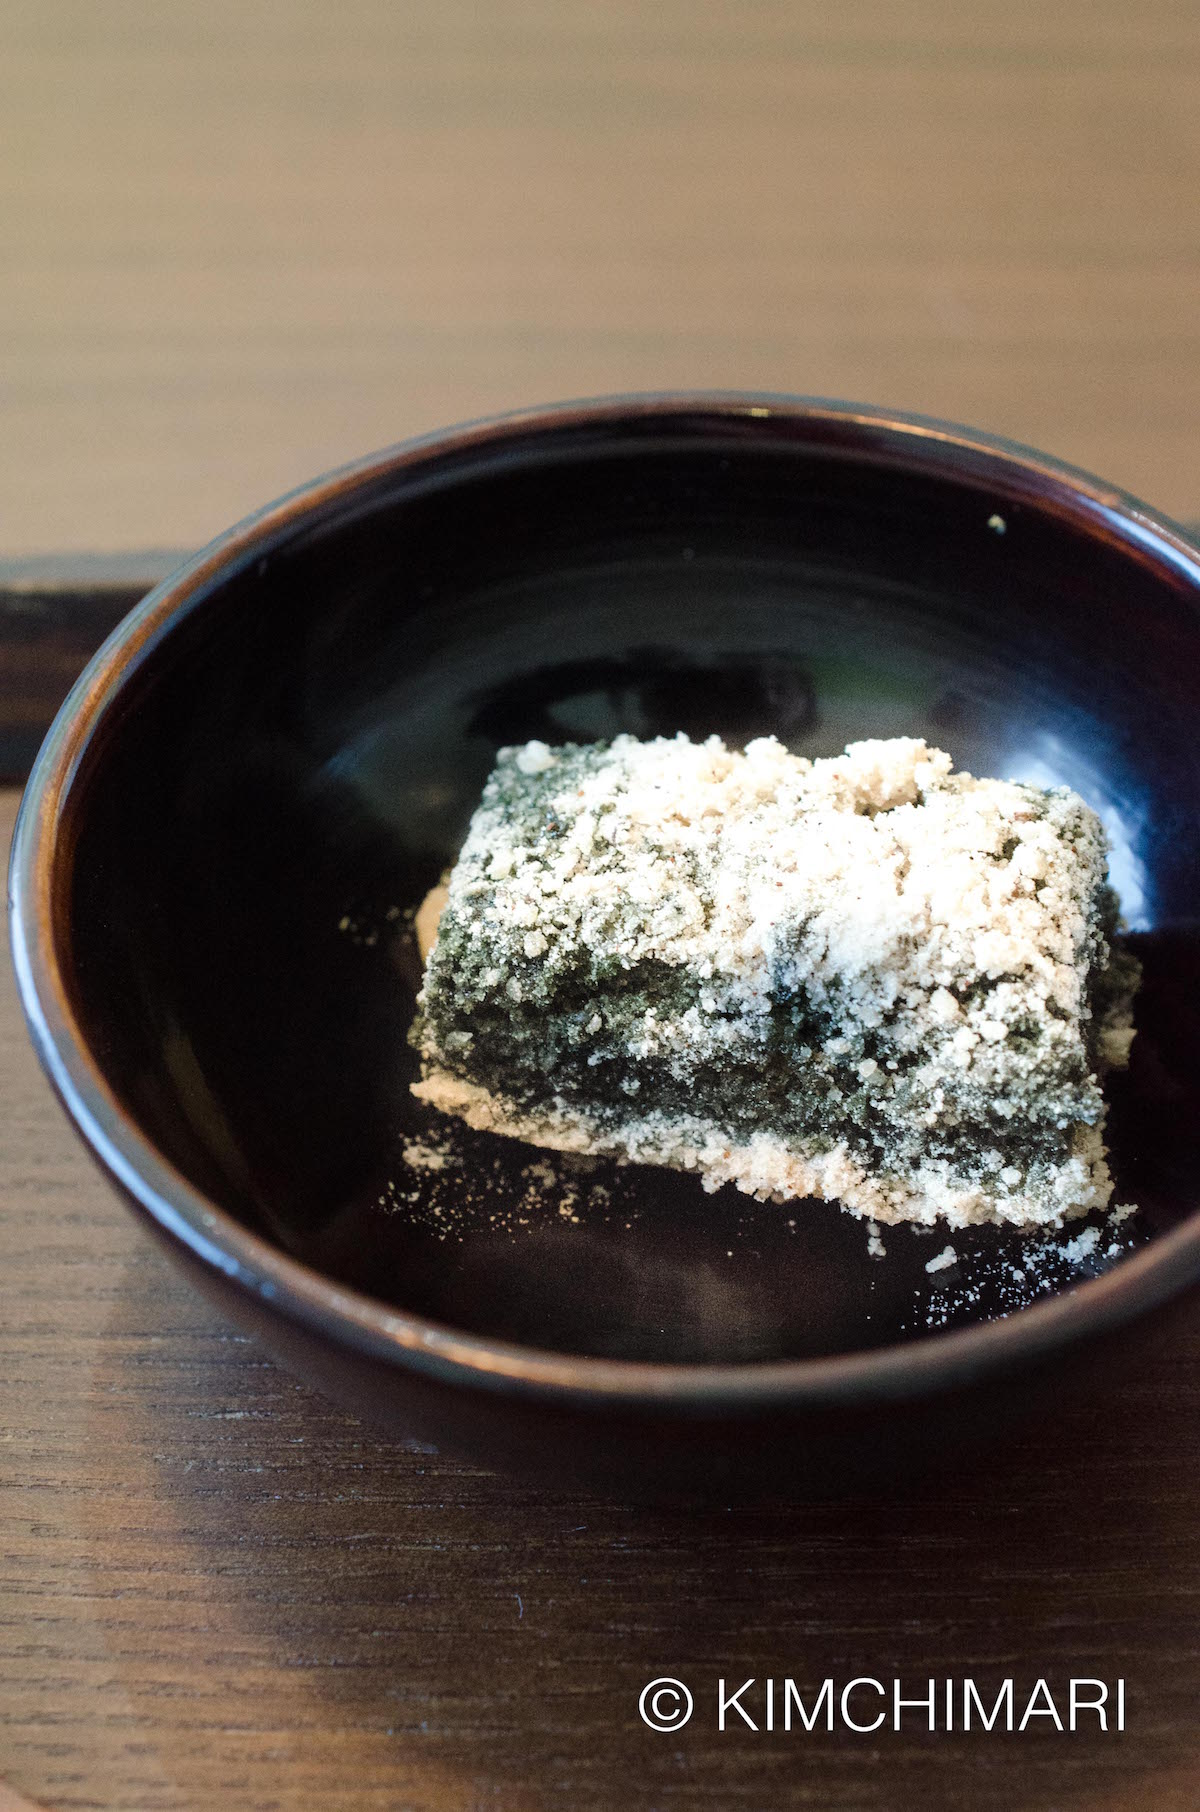 Korean Temple Food Dessert - Ssuk Tteok (mugwort rice cake)